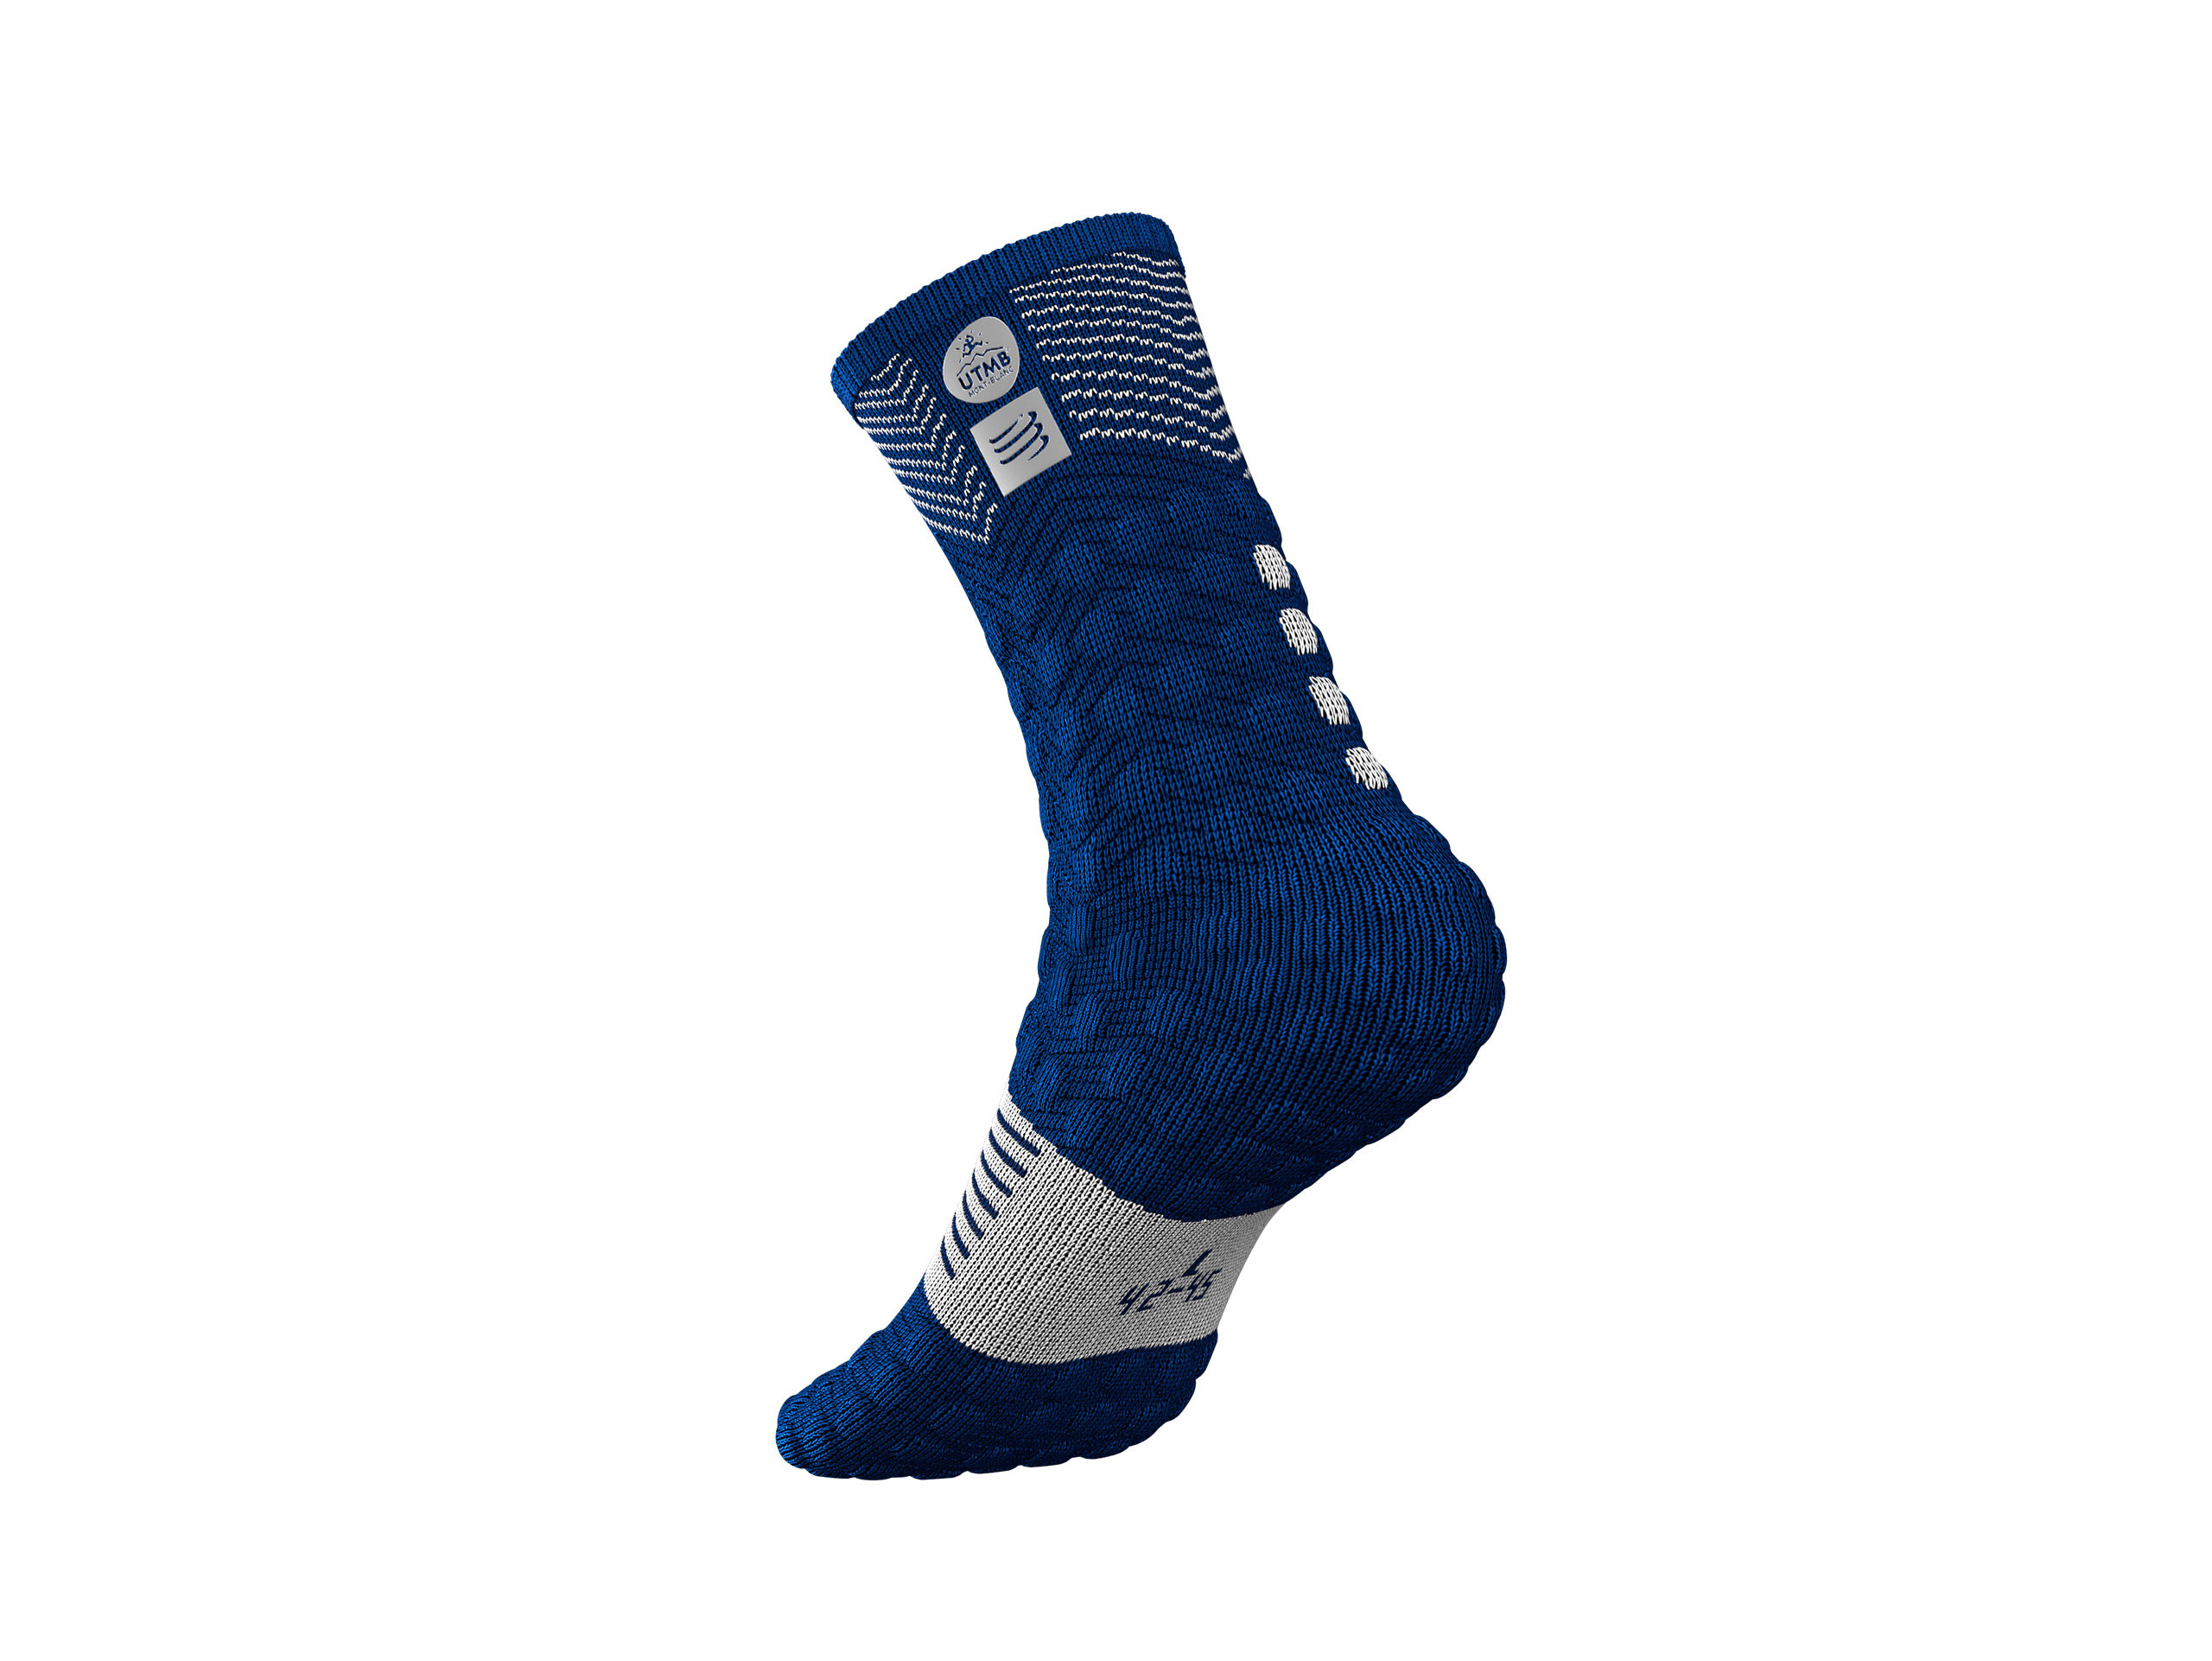 Pro Racing Socks v3.0 Ultra-Trail - UTMB® 2019